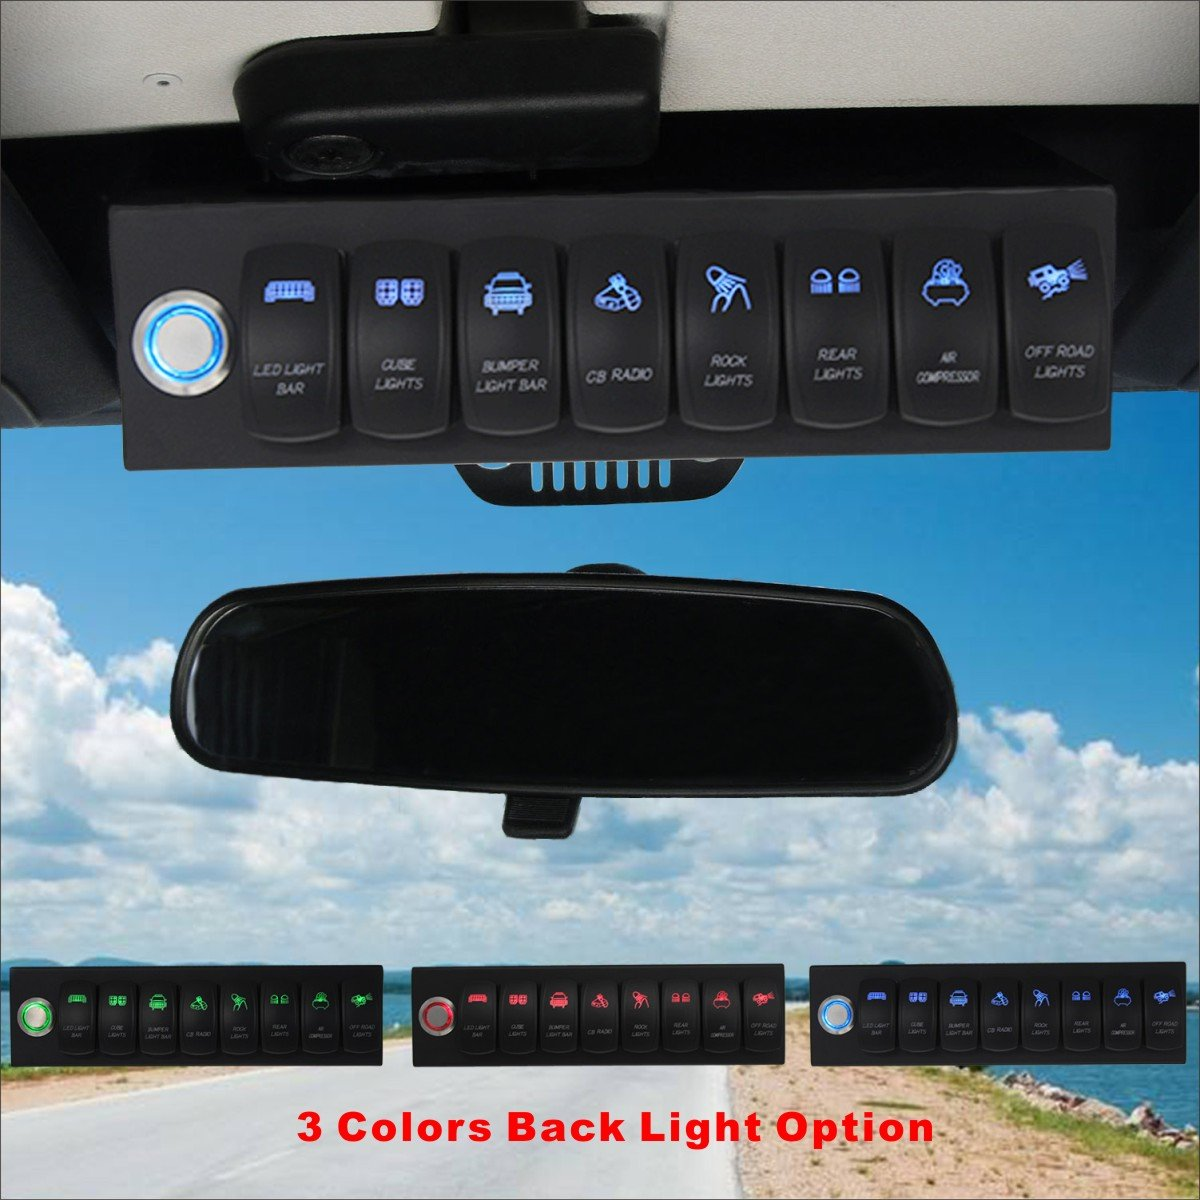 Voswitch Jeep Wrangler 2007-2018 JK & JKU Overhead 8-Switch Pod/Panel with Control and Source Box Blue Backlight(Comes with 15 Laser Etched Switch Covers) by Voswitch